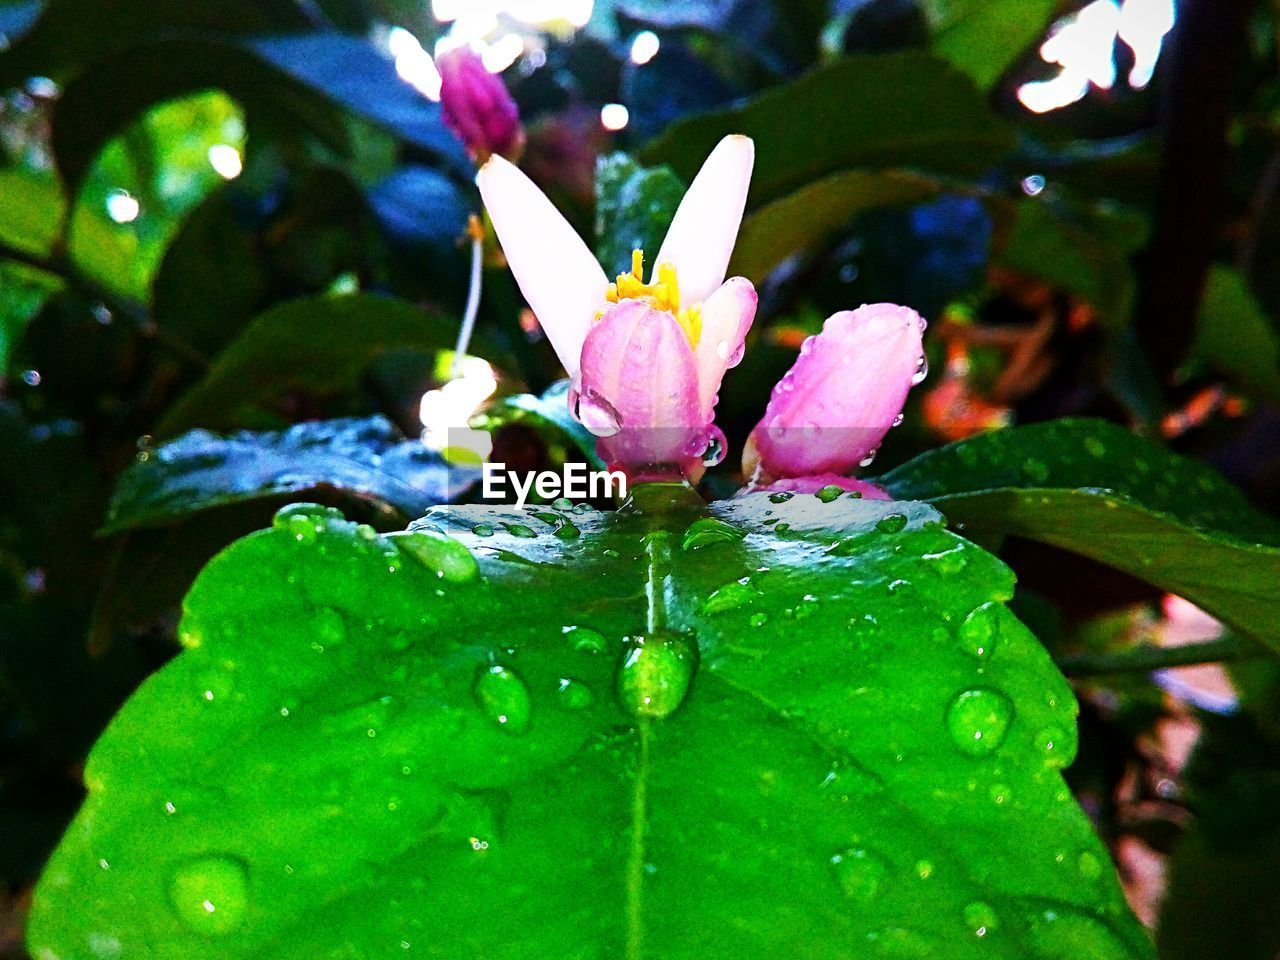 plant, water, drop, beauty in nature, growth, freshness, flower, close-up, flowering plant, leaf, vulnerability, plant part, wet, fragility, nature, green color, focus on foreground, no people, petal, pink color, flower head, purity, outdoors, rain, raindrop, dew, purple